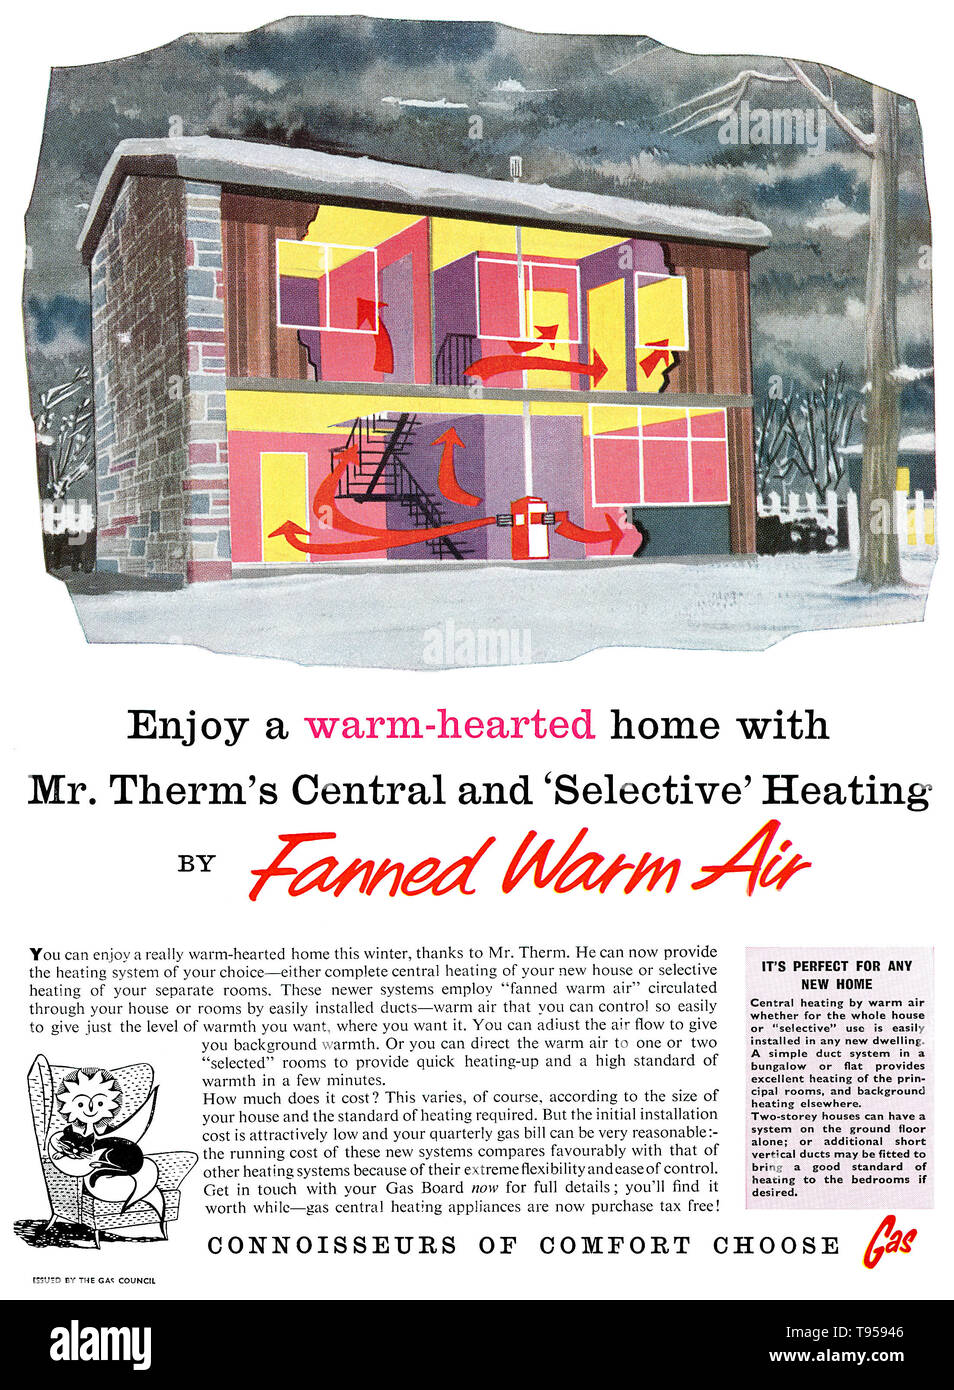 1958 British advertisement by the Gas Council for gas central heating. Stock Photo